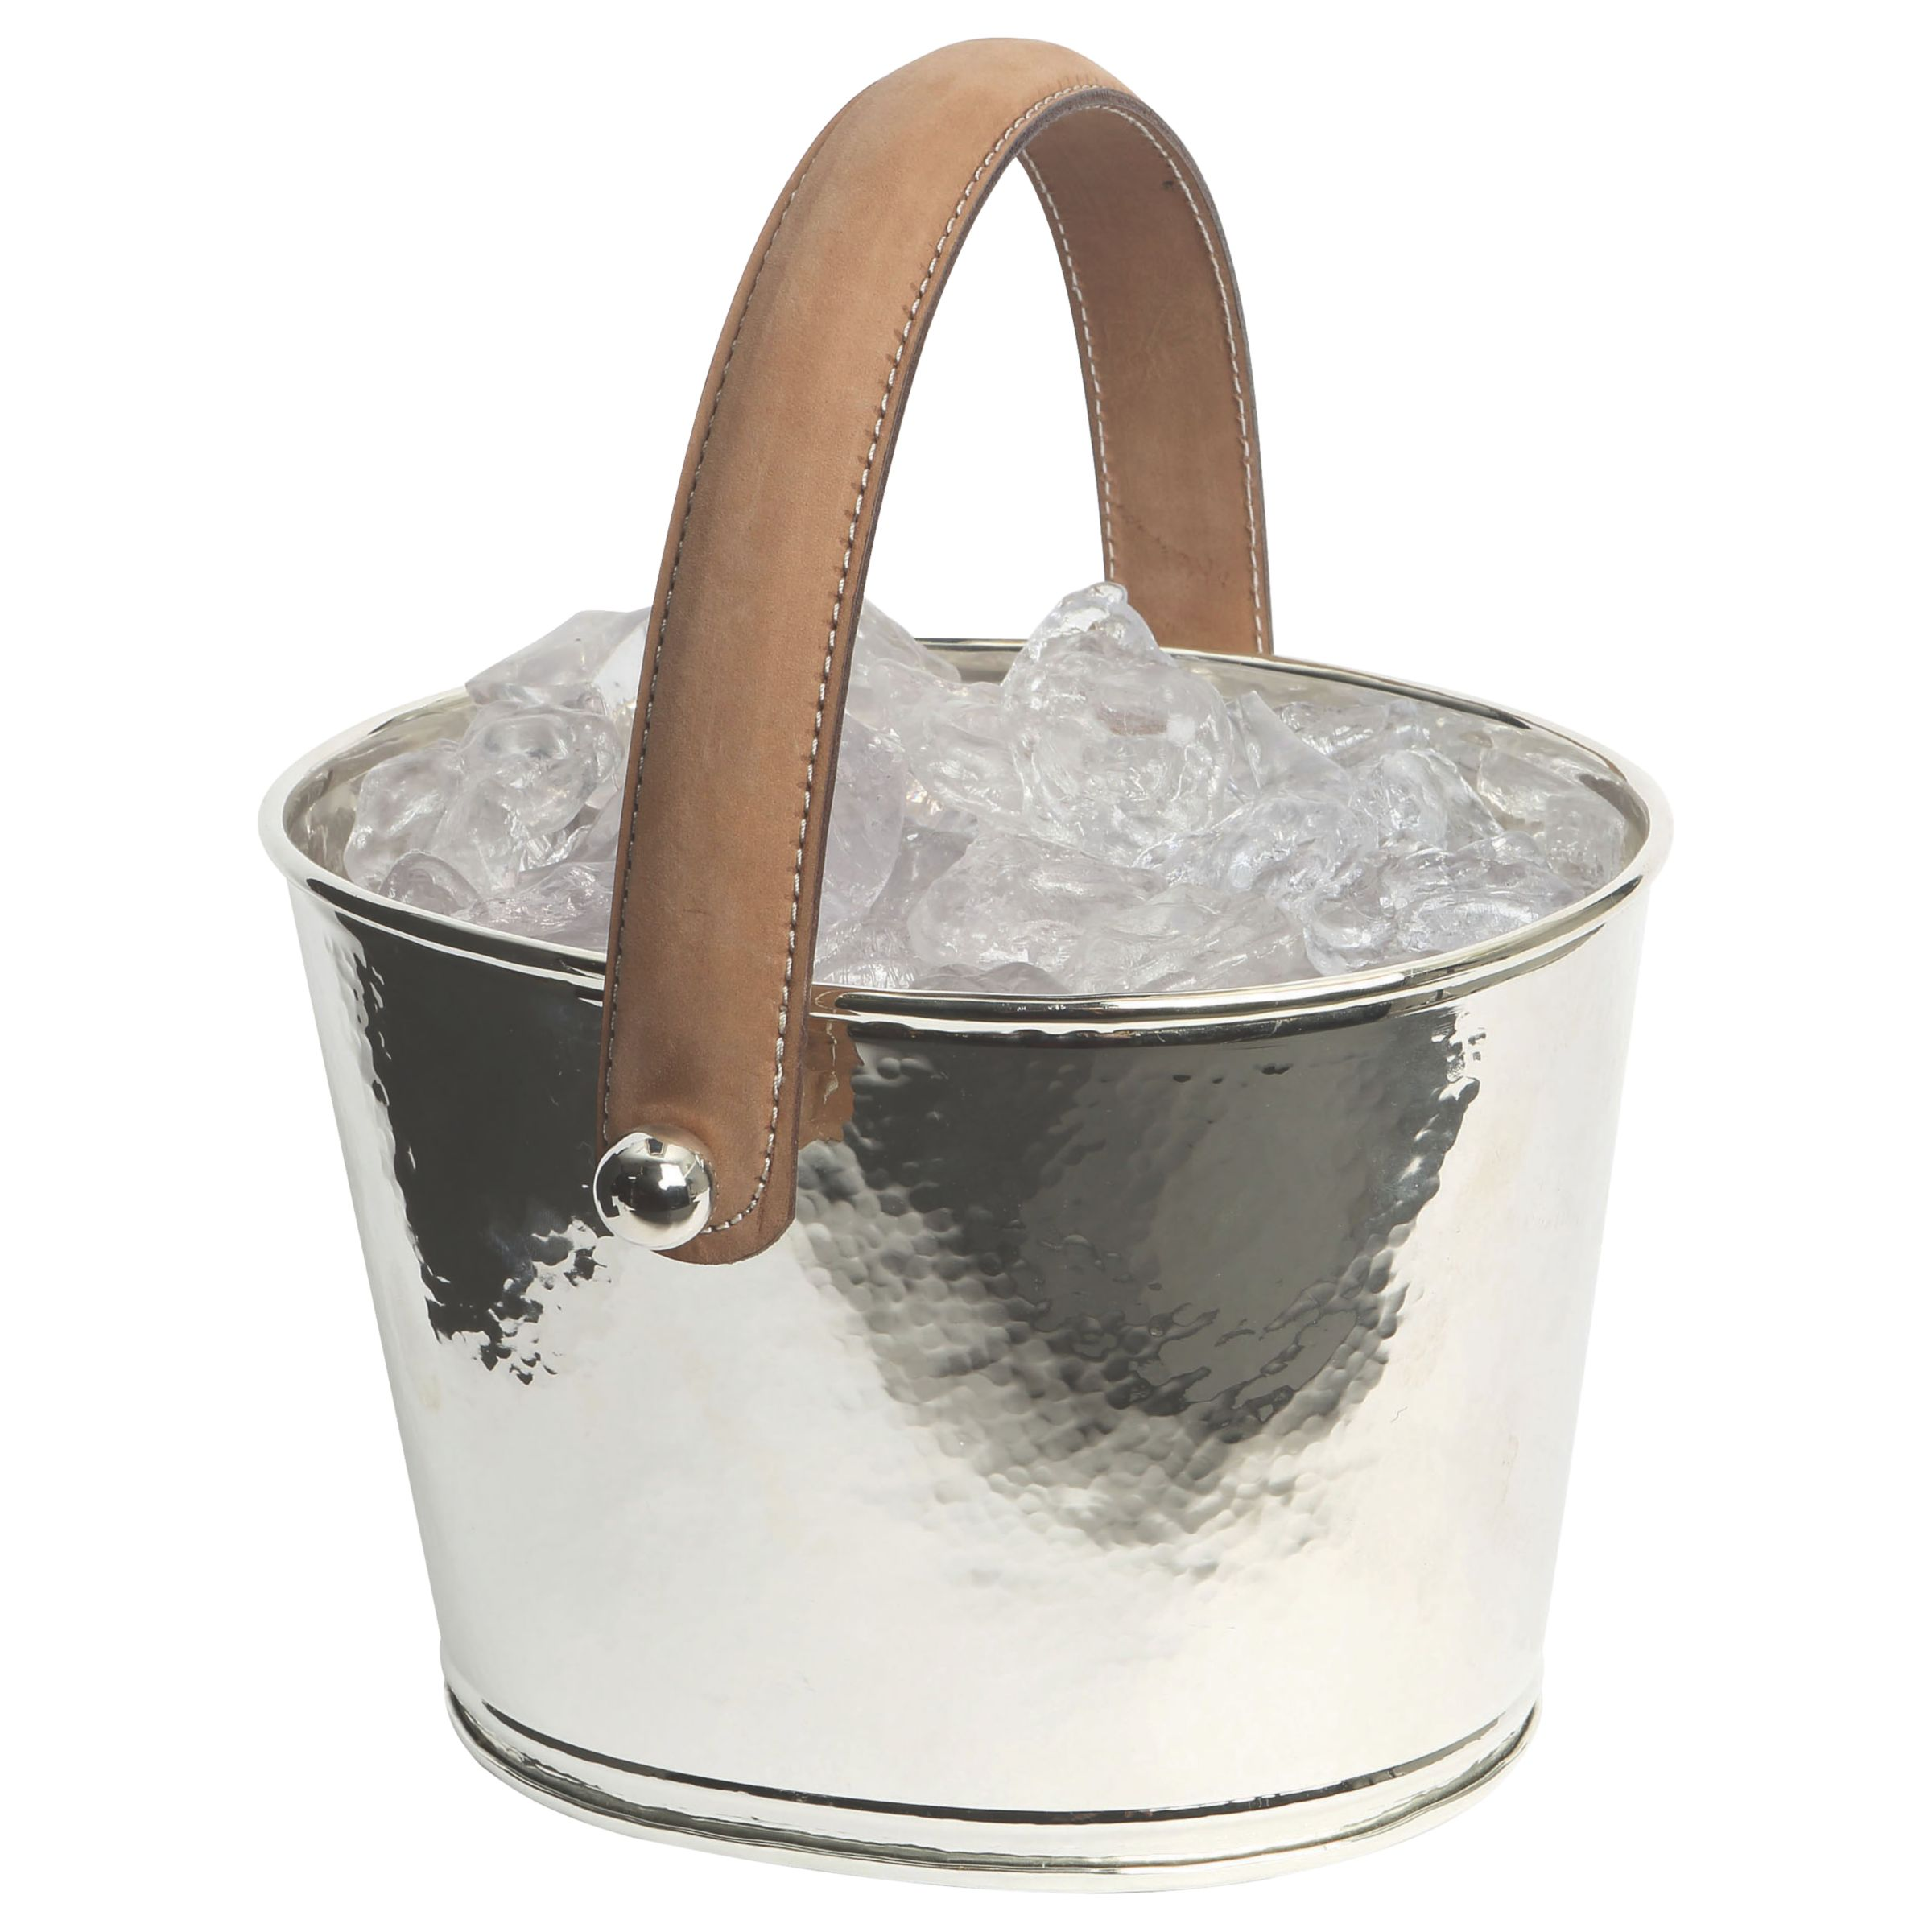 Culinary Concepts Culinary Concepts Leather Handle Ice Bucket